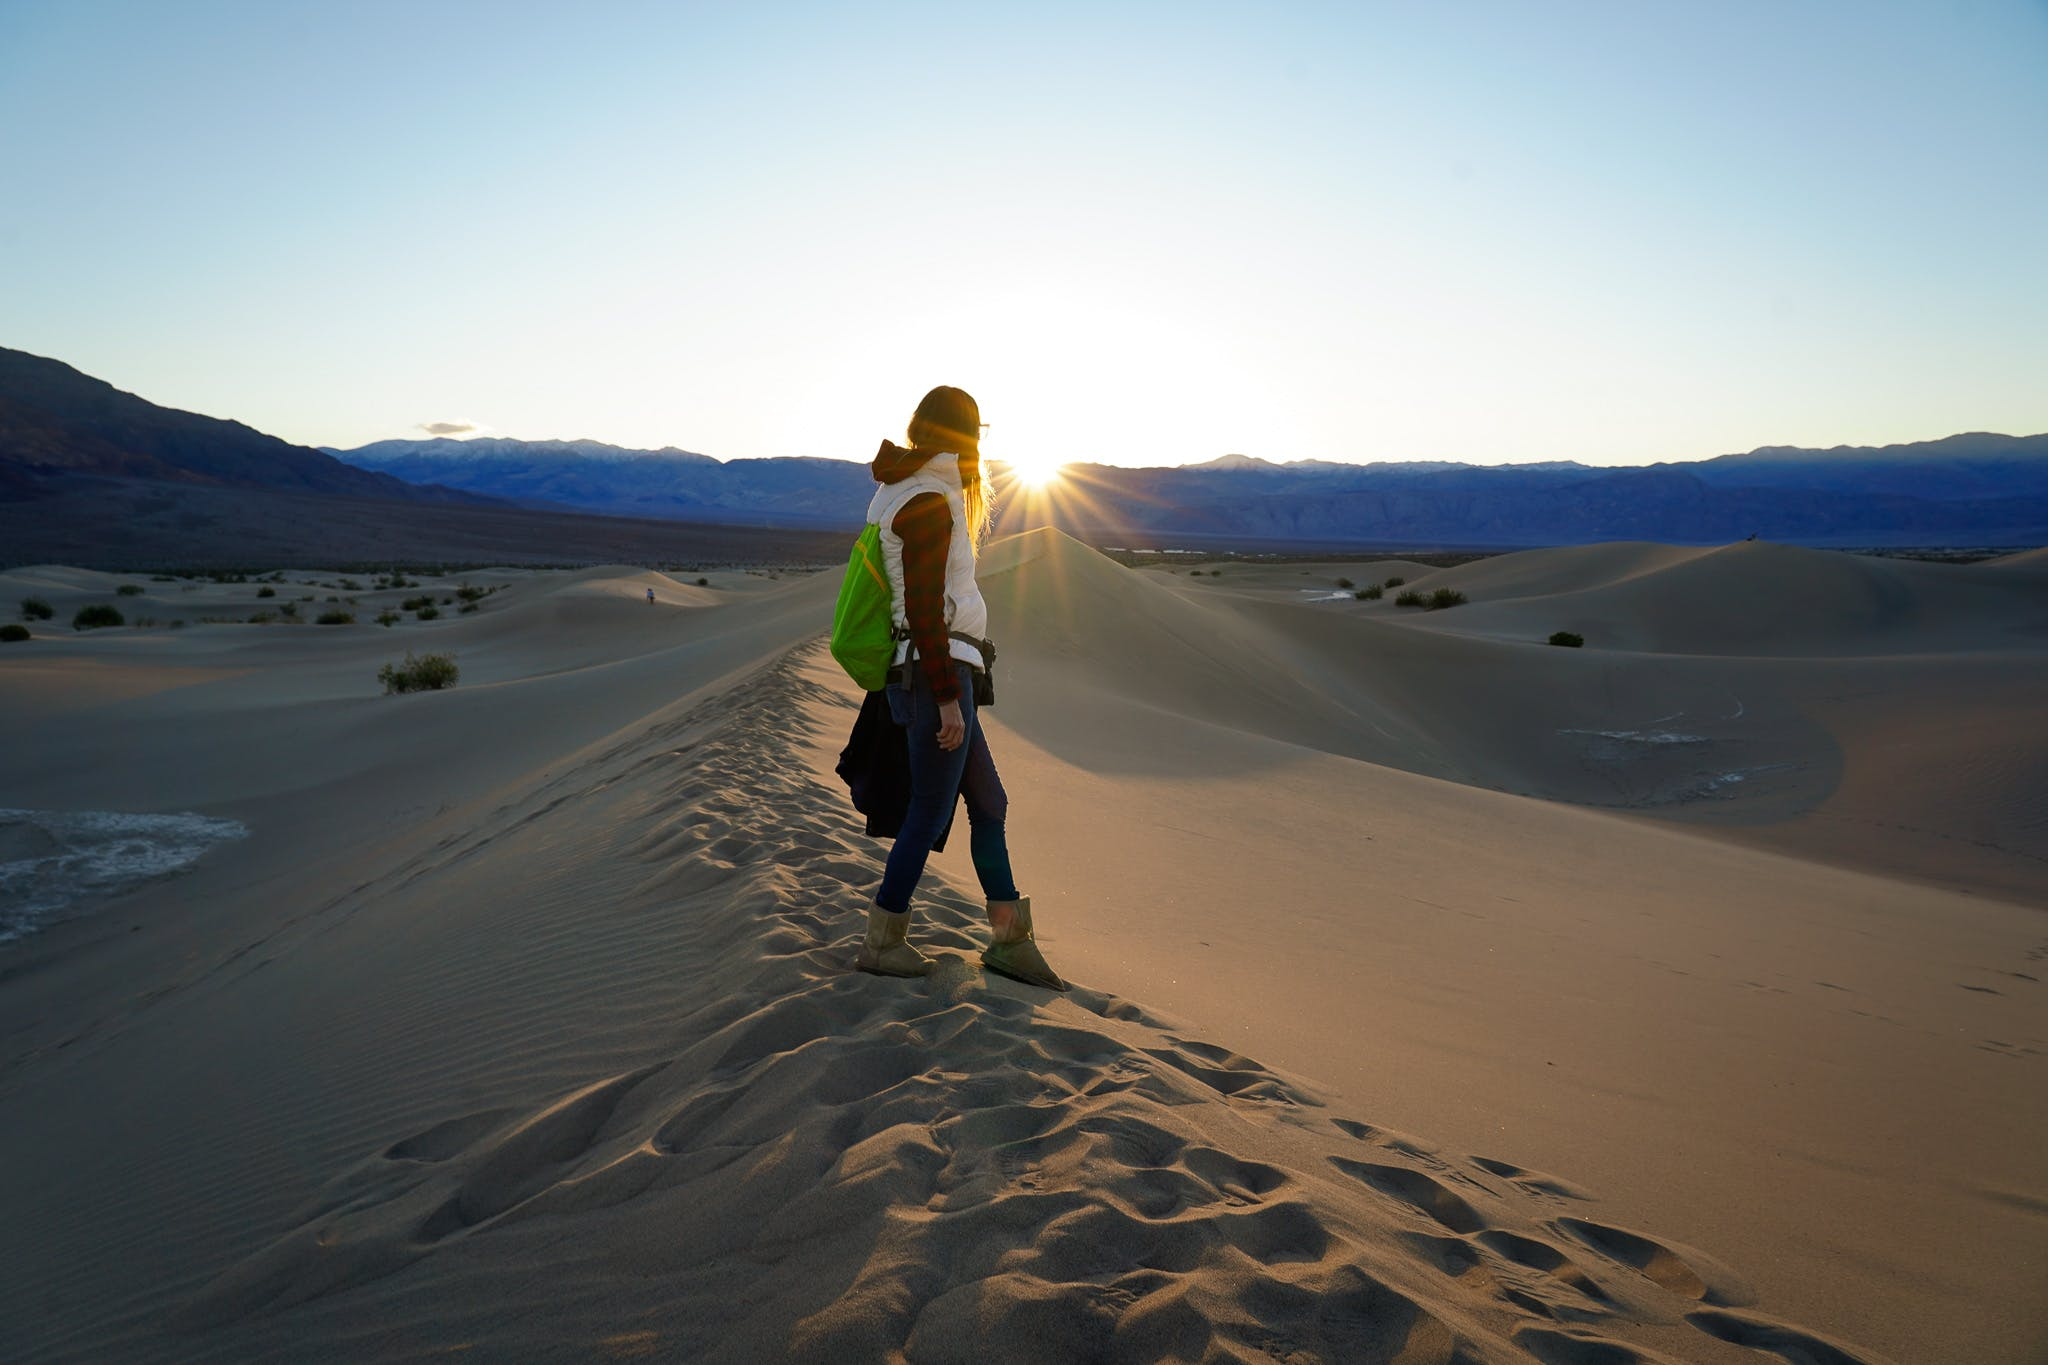 Woman on sand dune at Mesquite Flat at sunset in Death Valley National Park